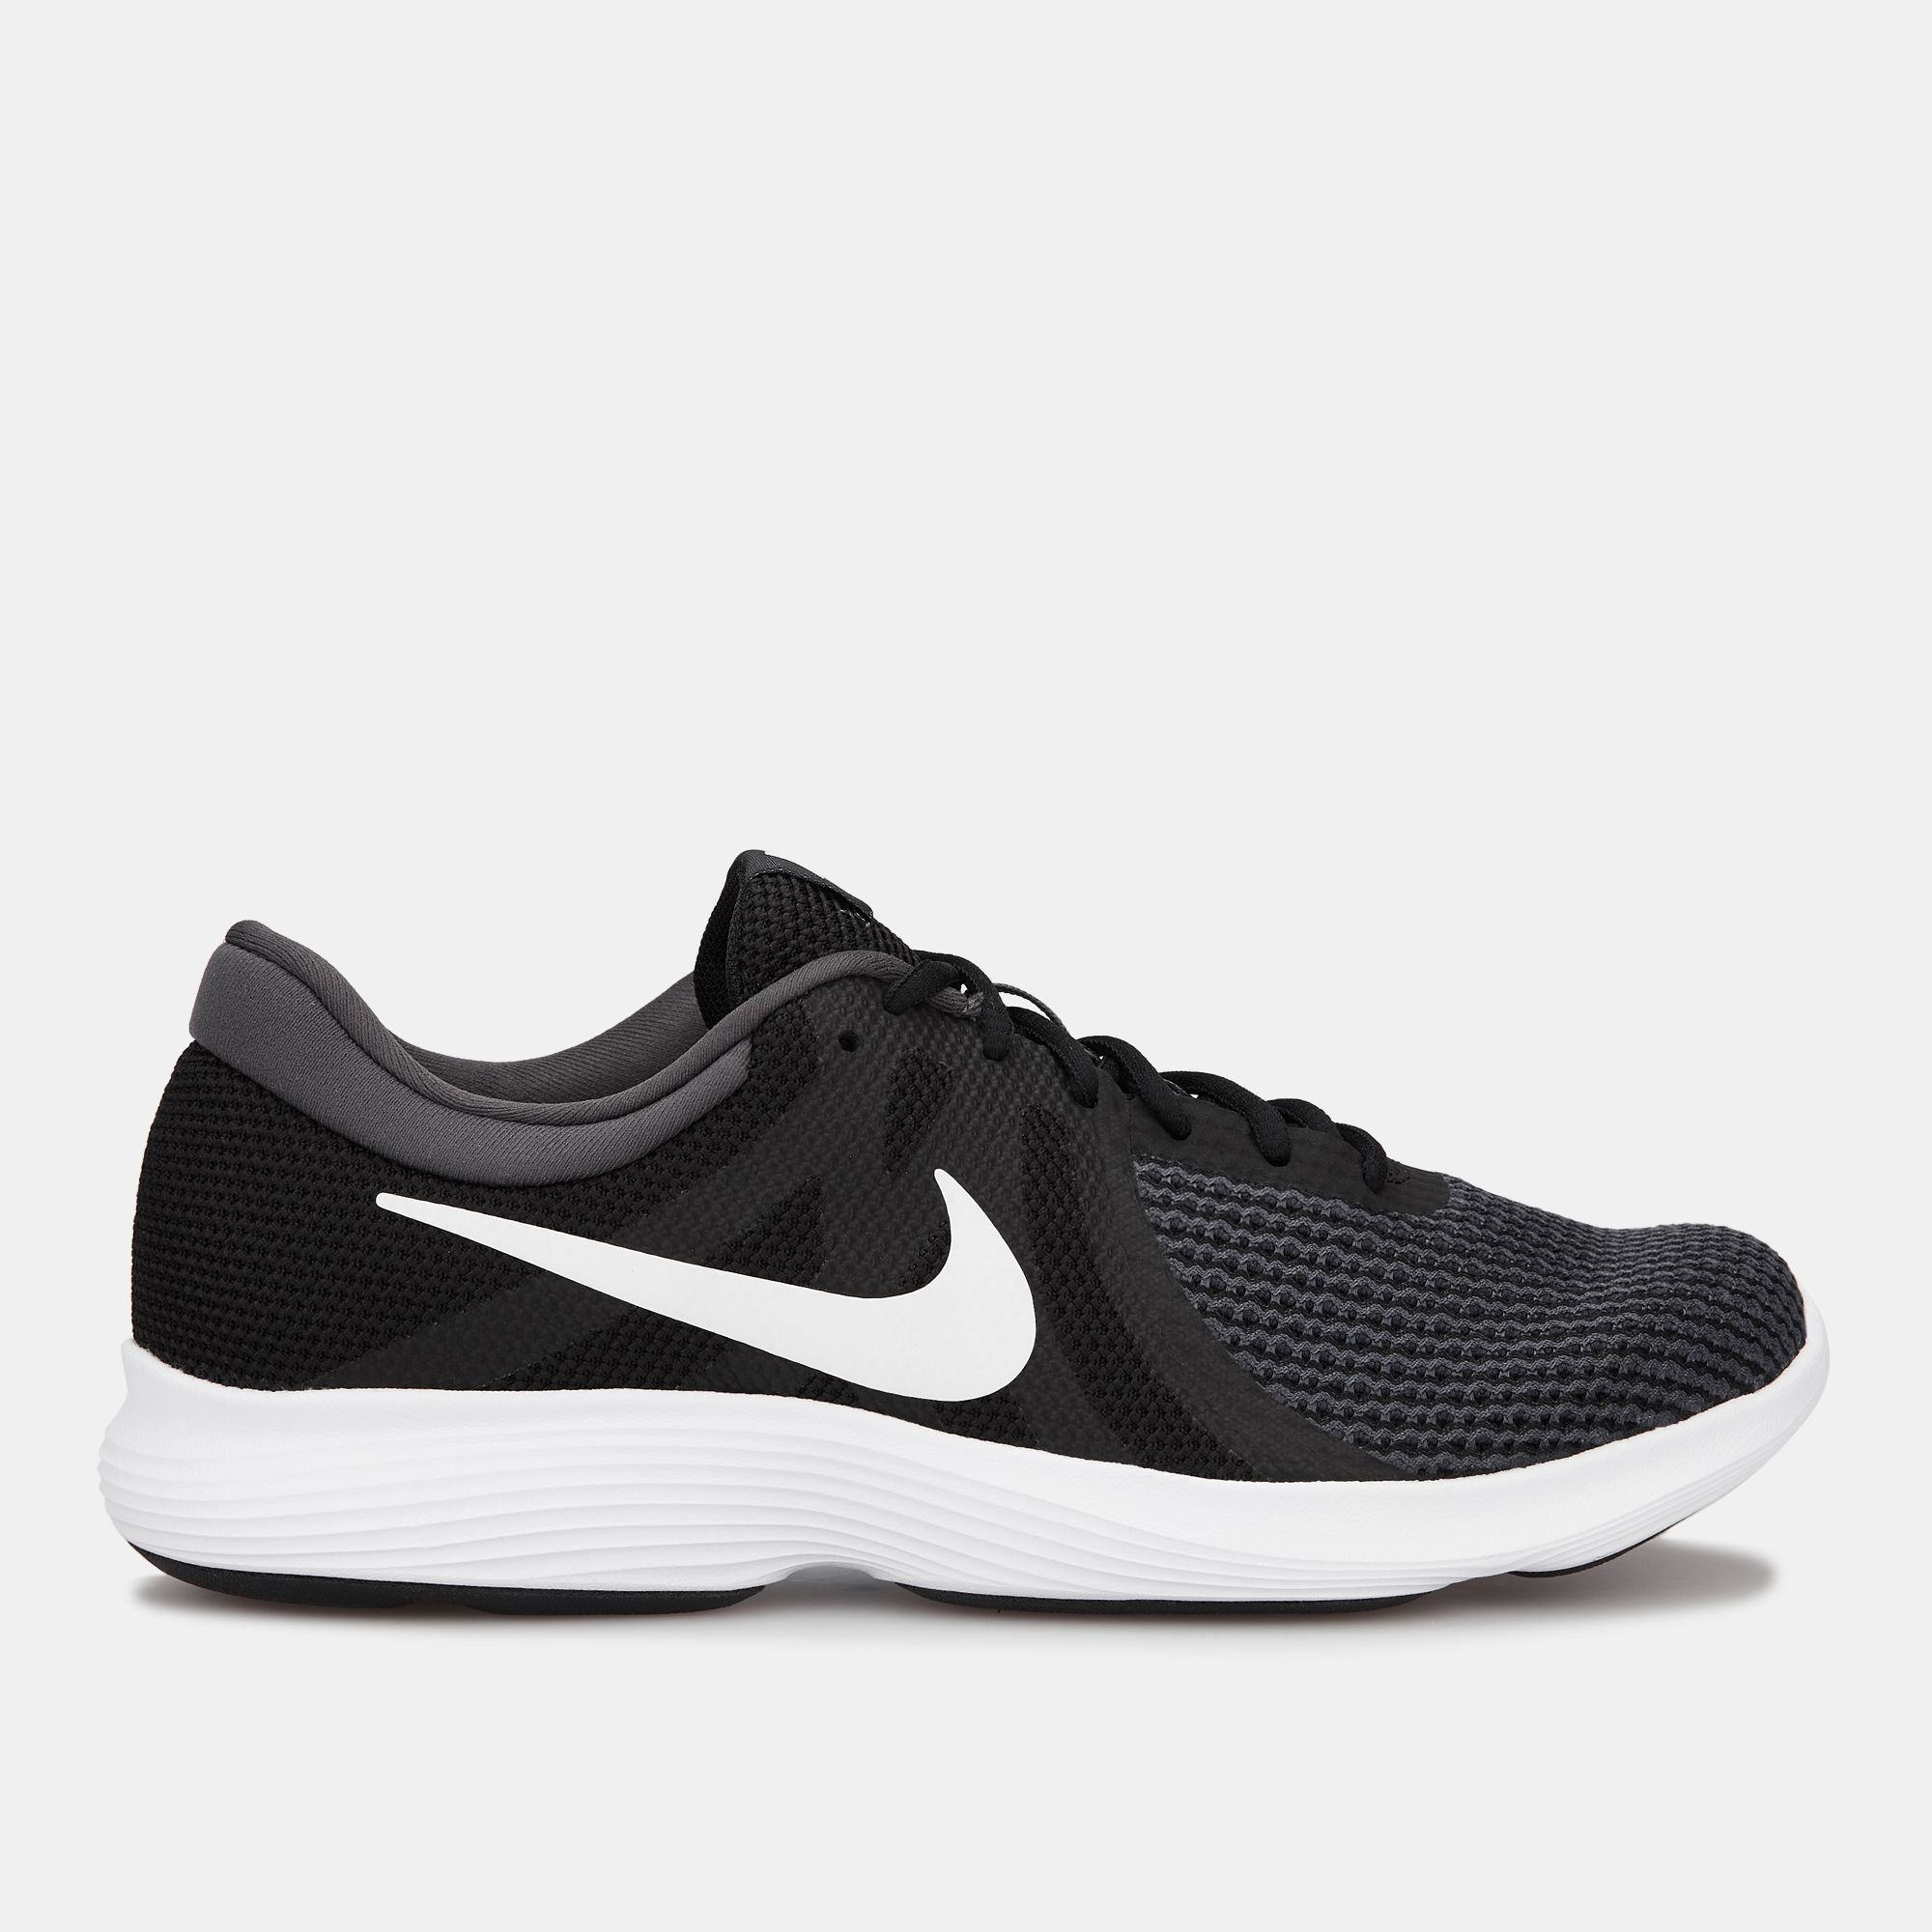 164cd783659f2 Nike Men s Revolution 4 EU Shoe